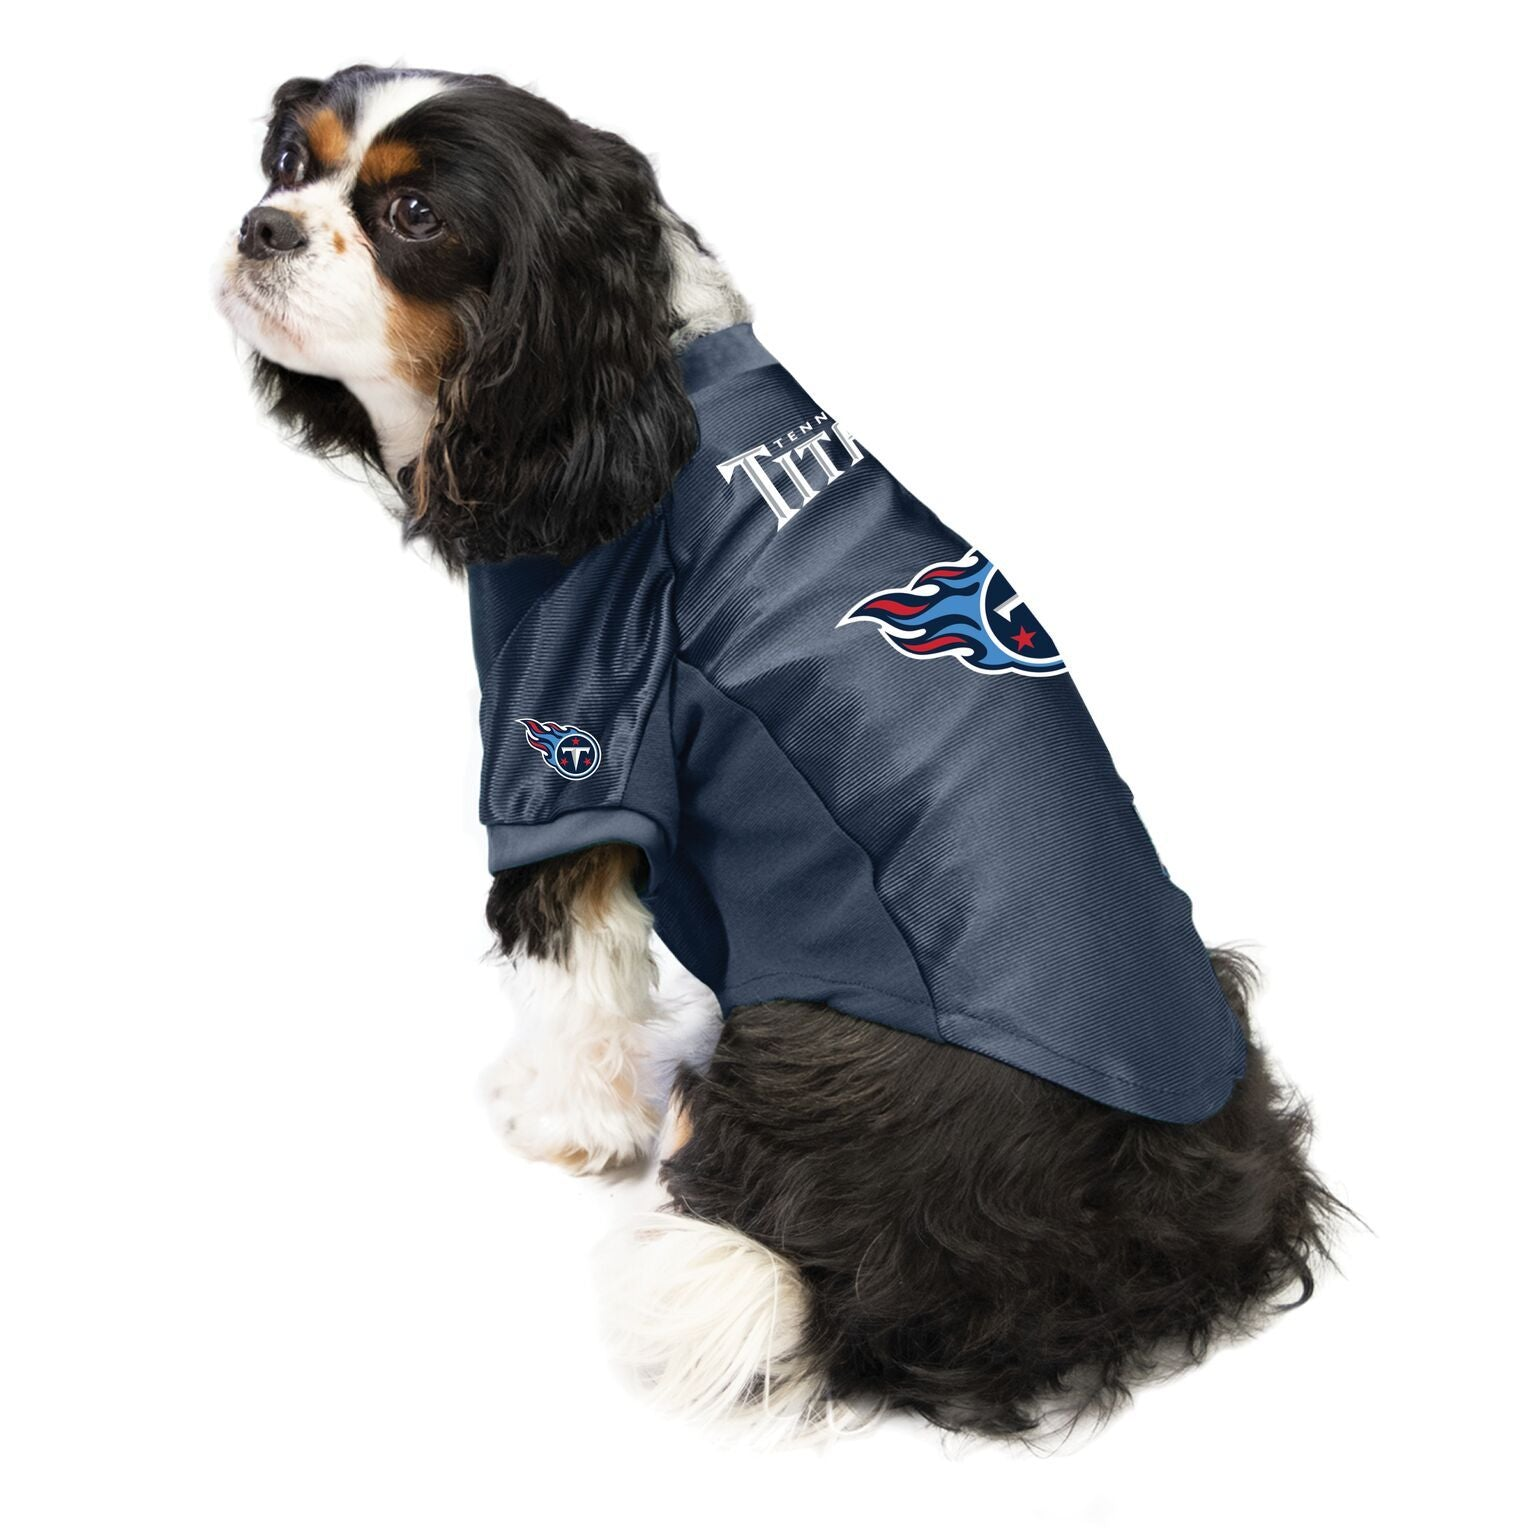 Titans outfit for dogs